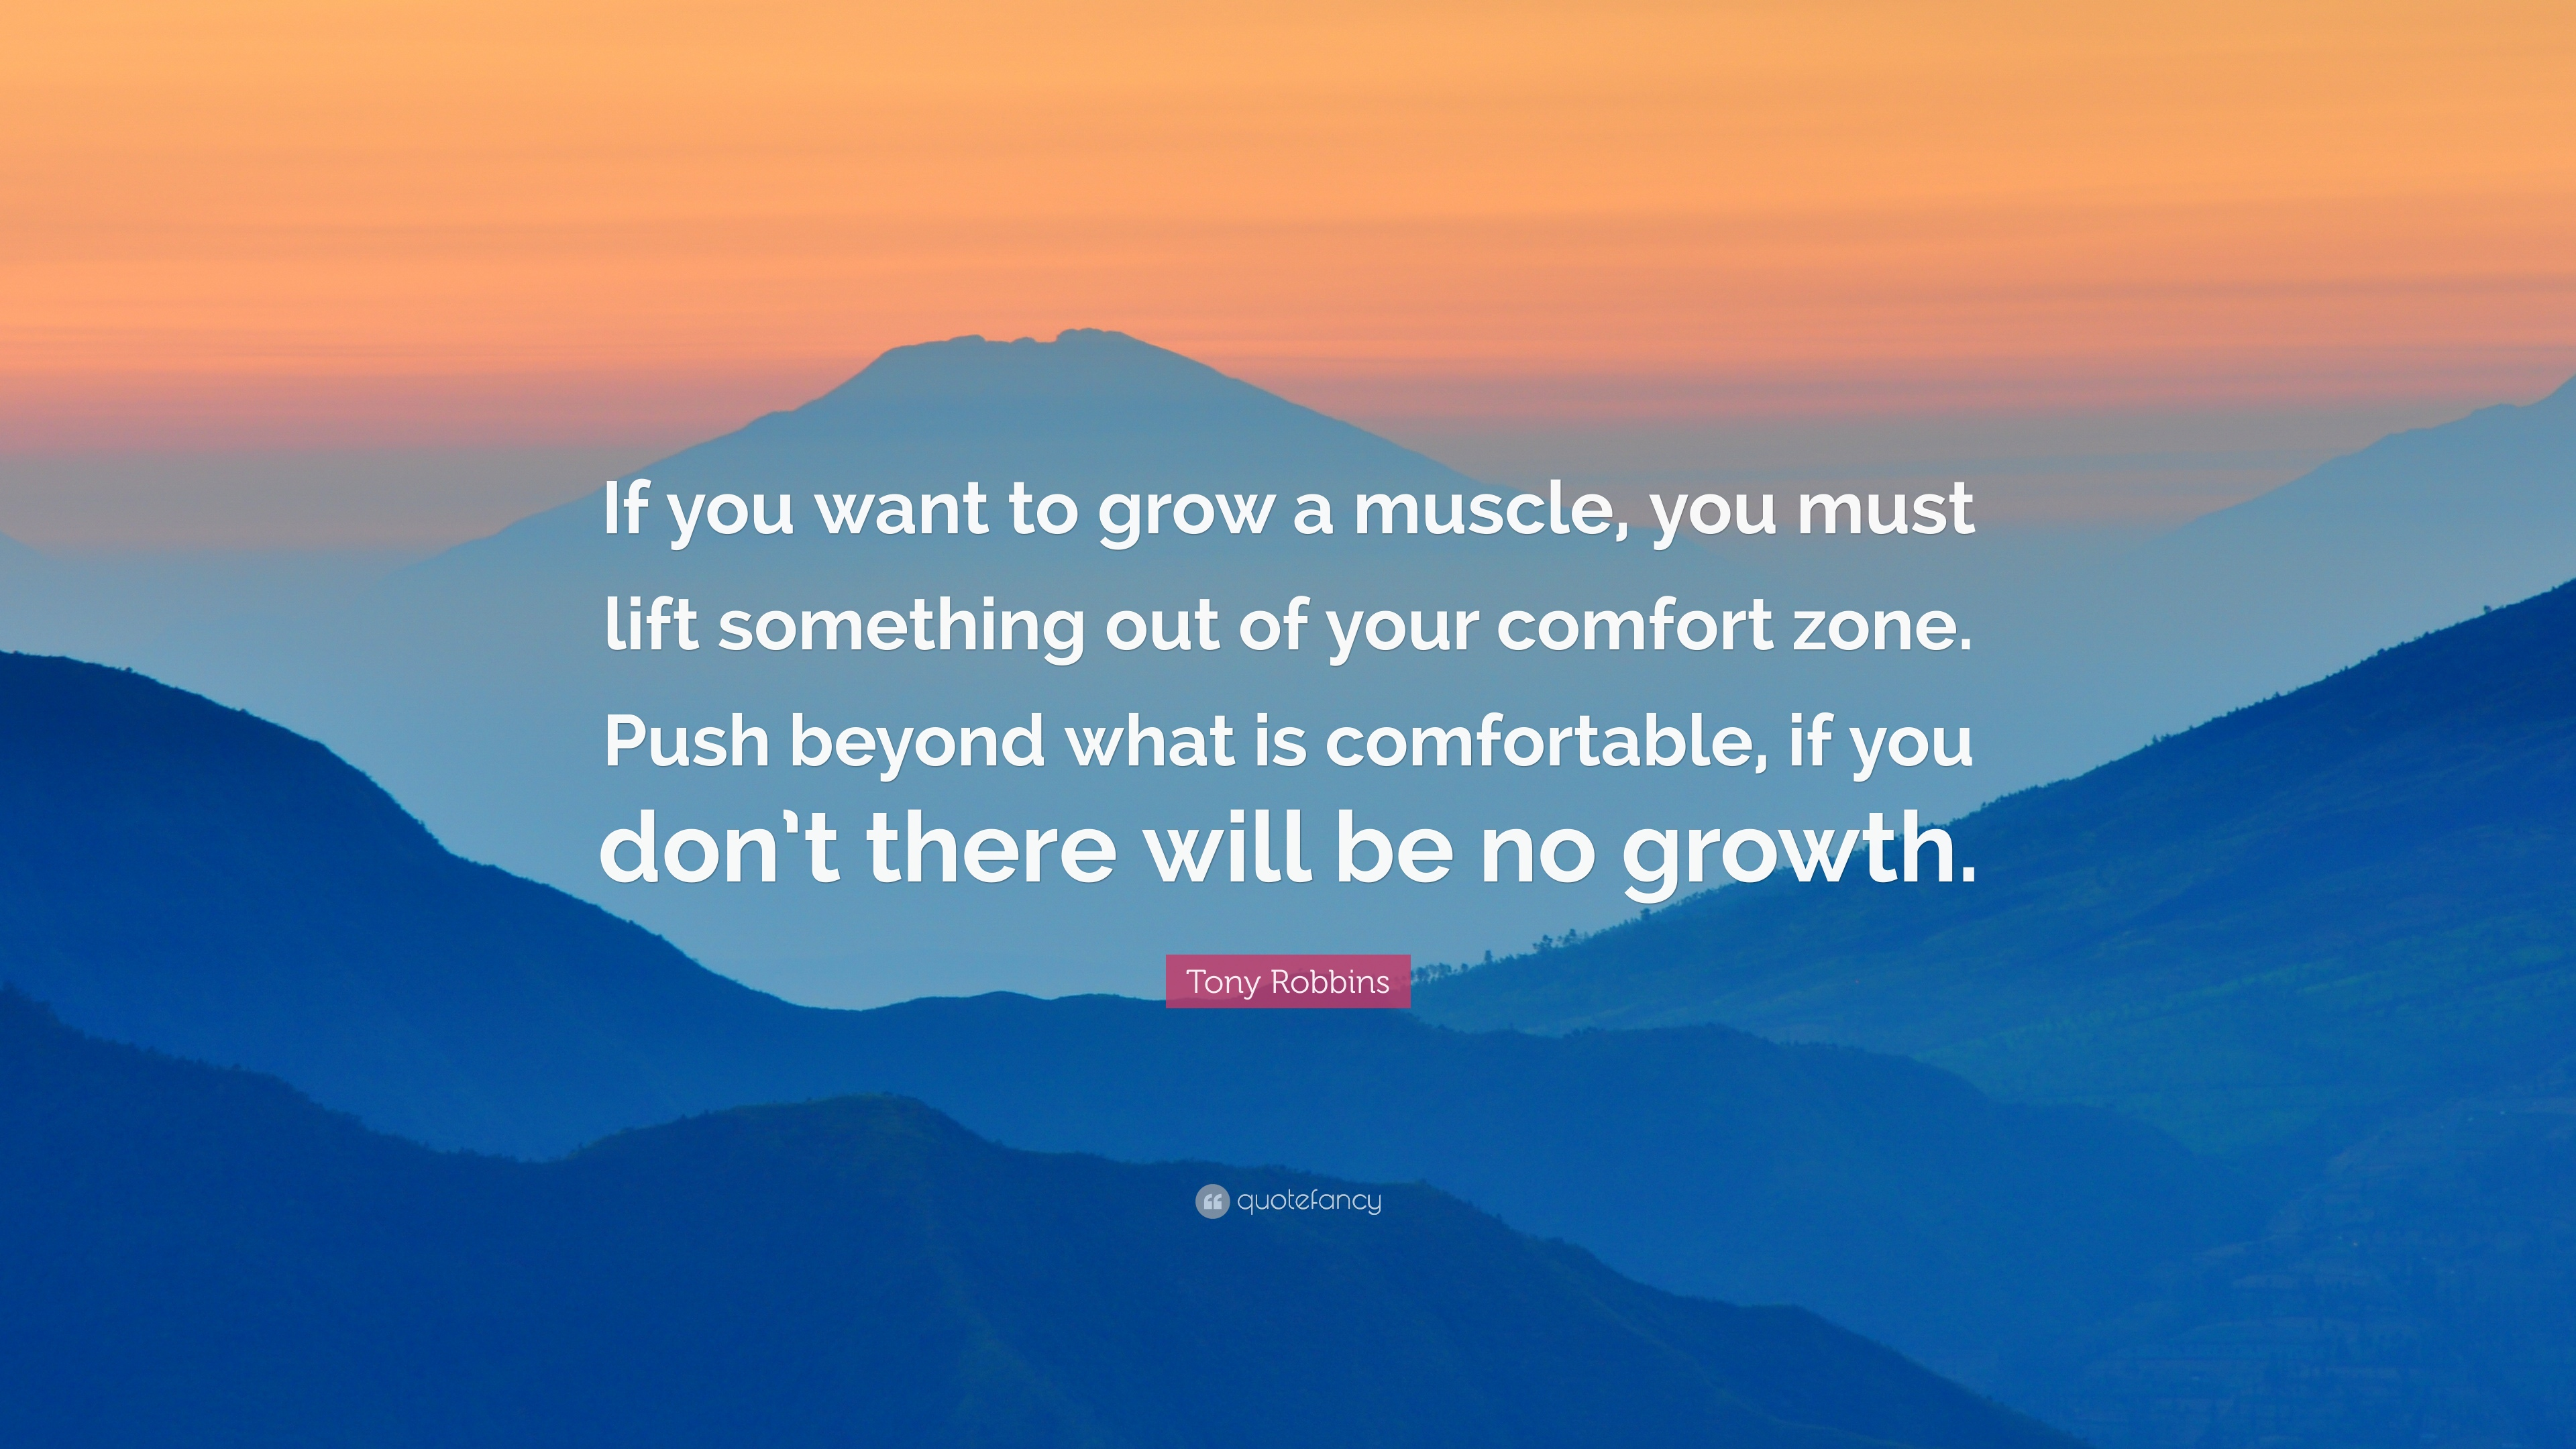 Tony Robbins Quote If You Want To Grow A Muscle You Must Lift Something Out Of Your Comfort Zone Push Beyond What Is Comfortable If You 9 Wallpapers Quotefancy